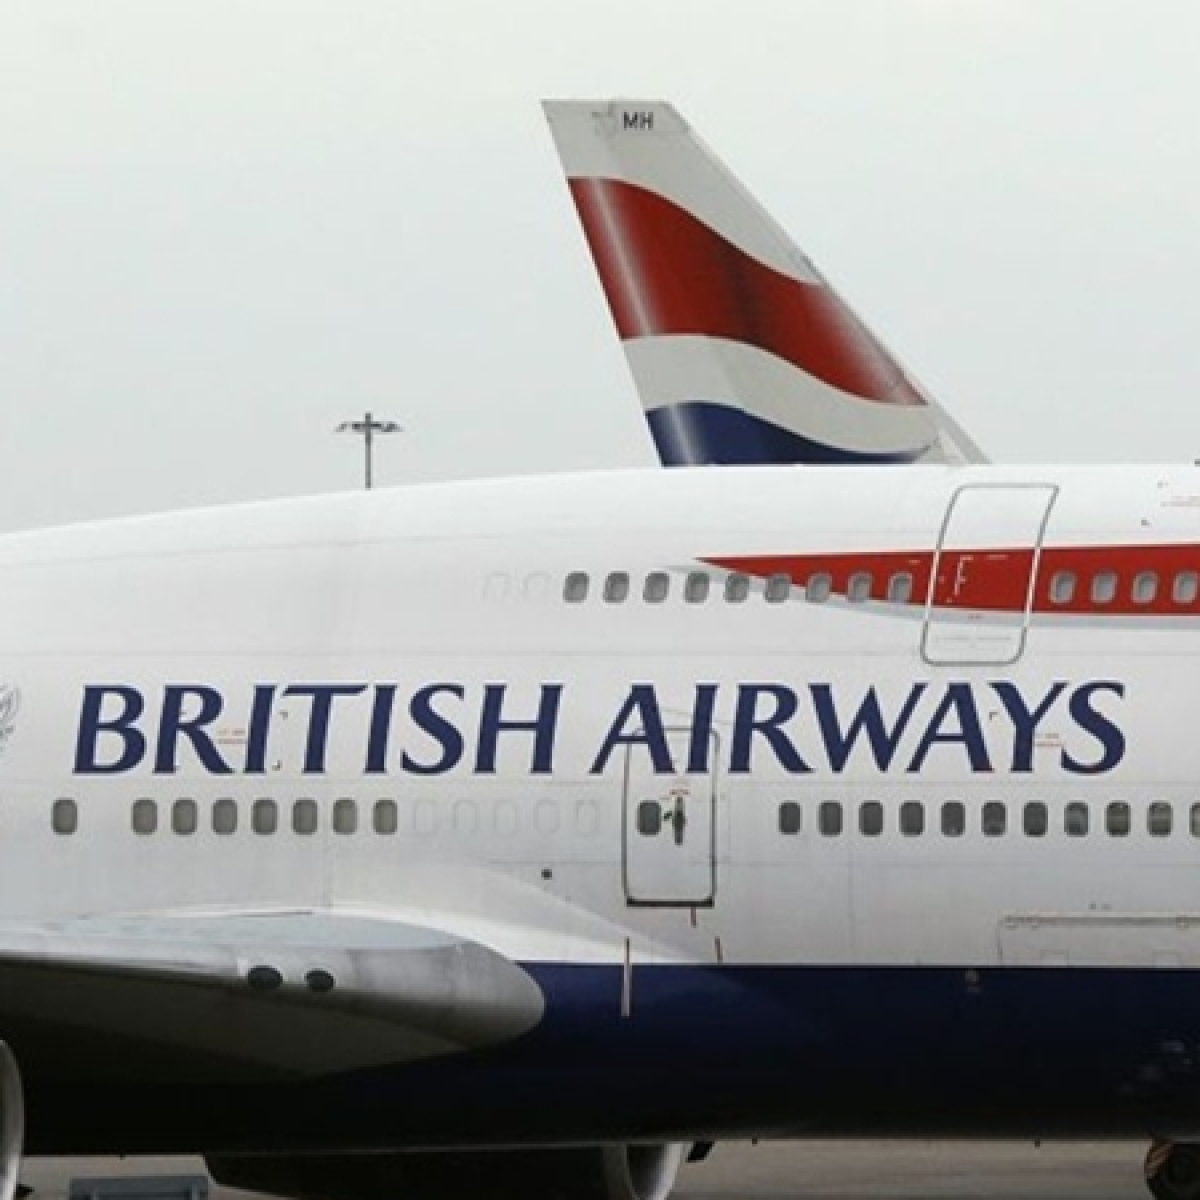 London: British Airways flight evacuated at Heathrow after smoke filled cabin